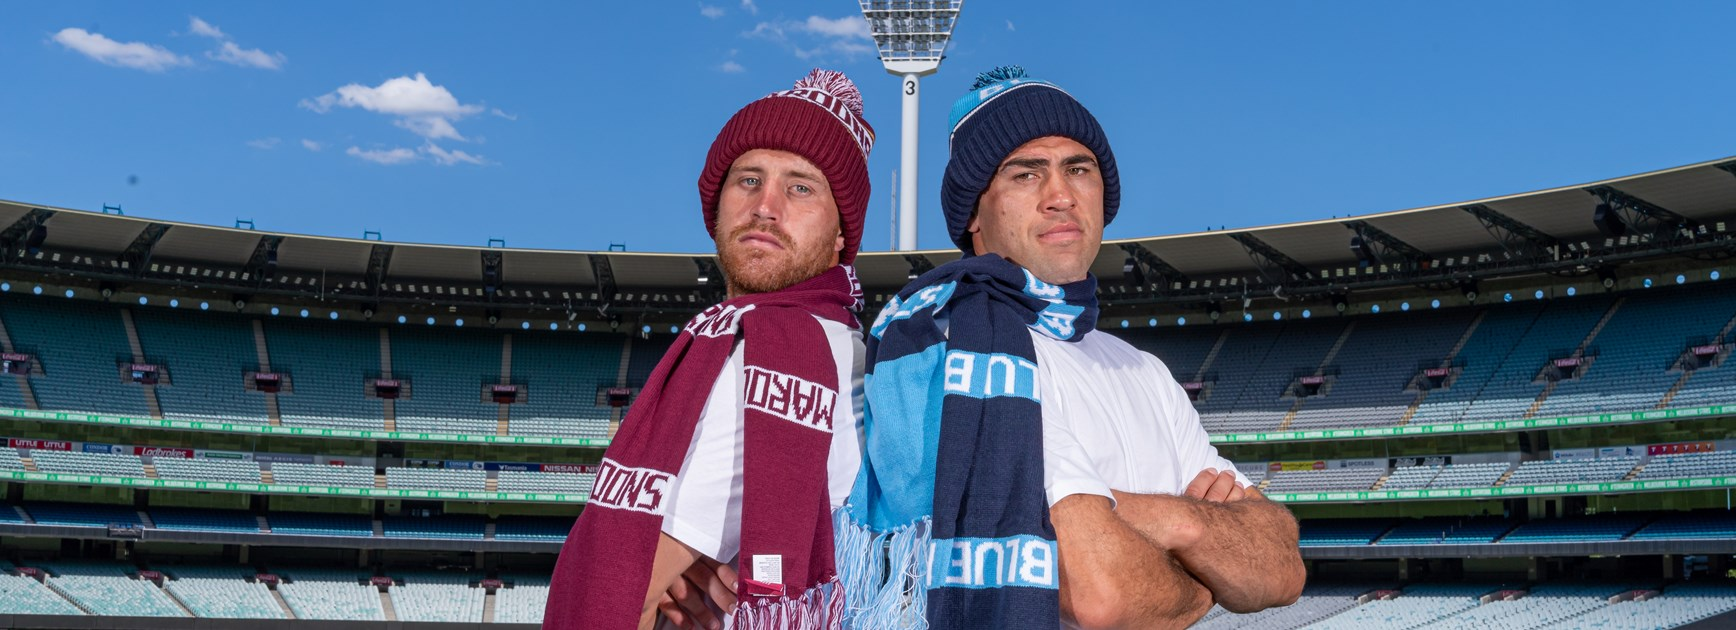 2021 Origin dates announced: MCG to host series opener